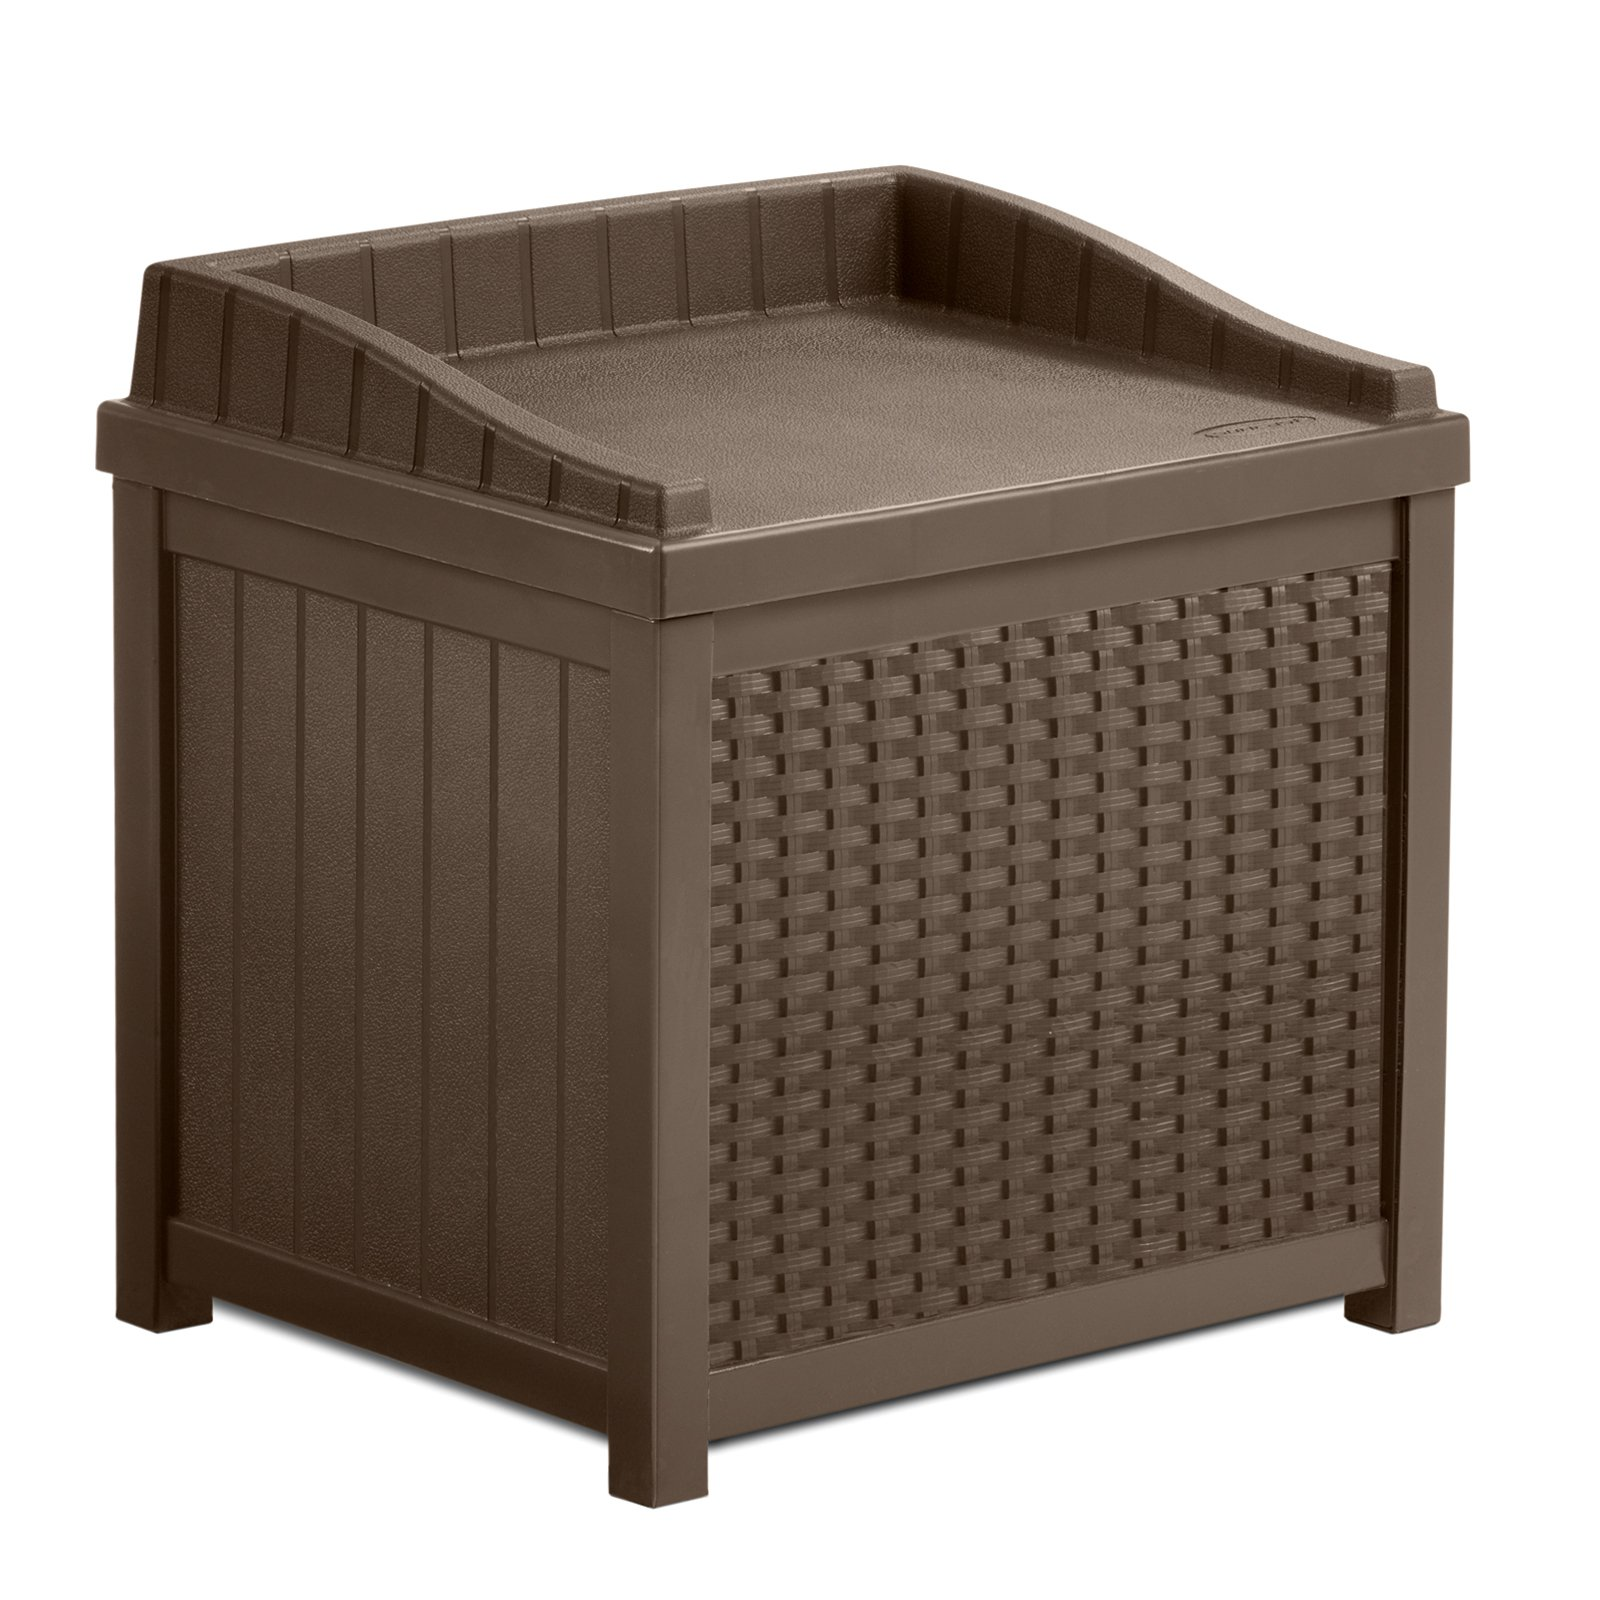 Suncast 22 Gallon Java Resin Wicker Small Storage Seat Deck Box SSW1200    Walmart.com